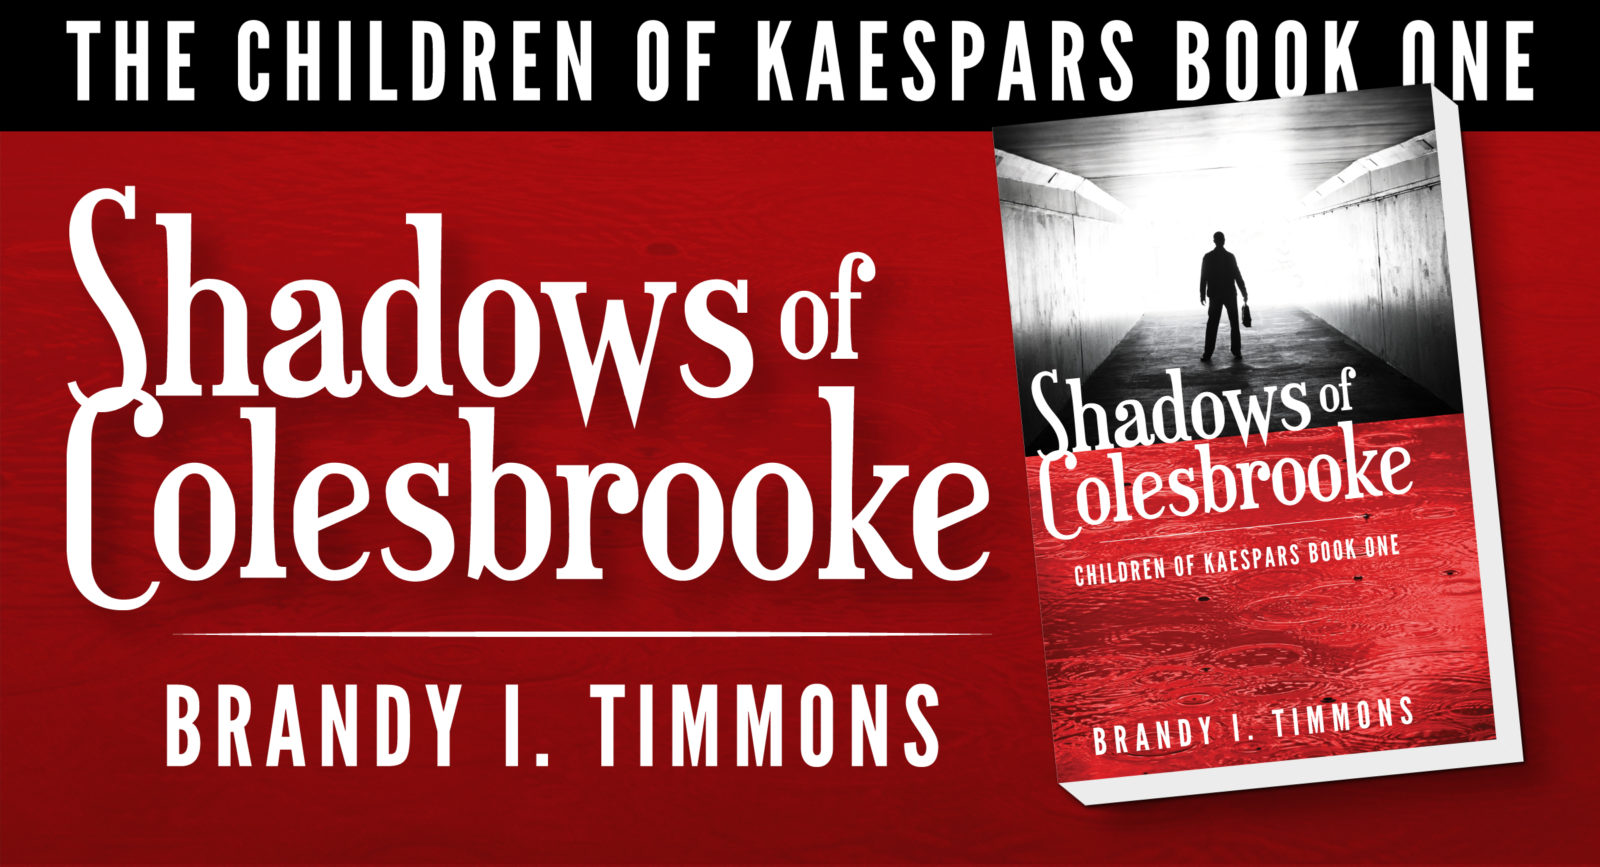 Shadows of Colesbrooke by Brandy I Timmons book 1 of Children of Kaespars